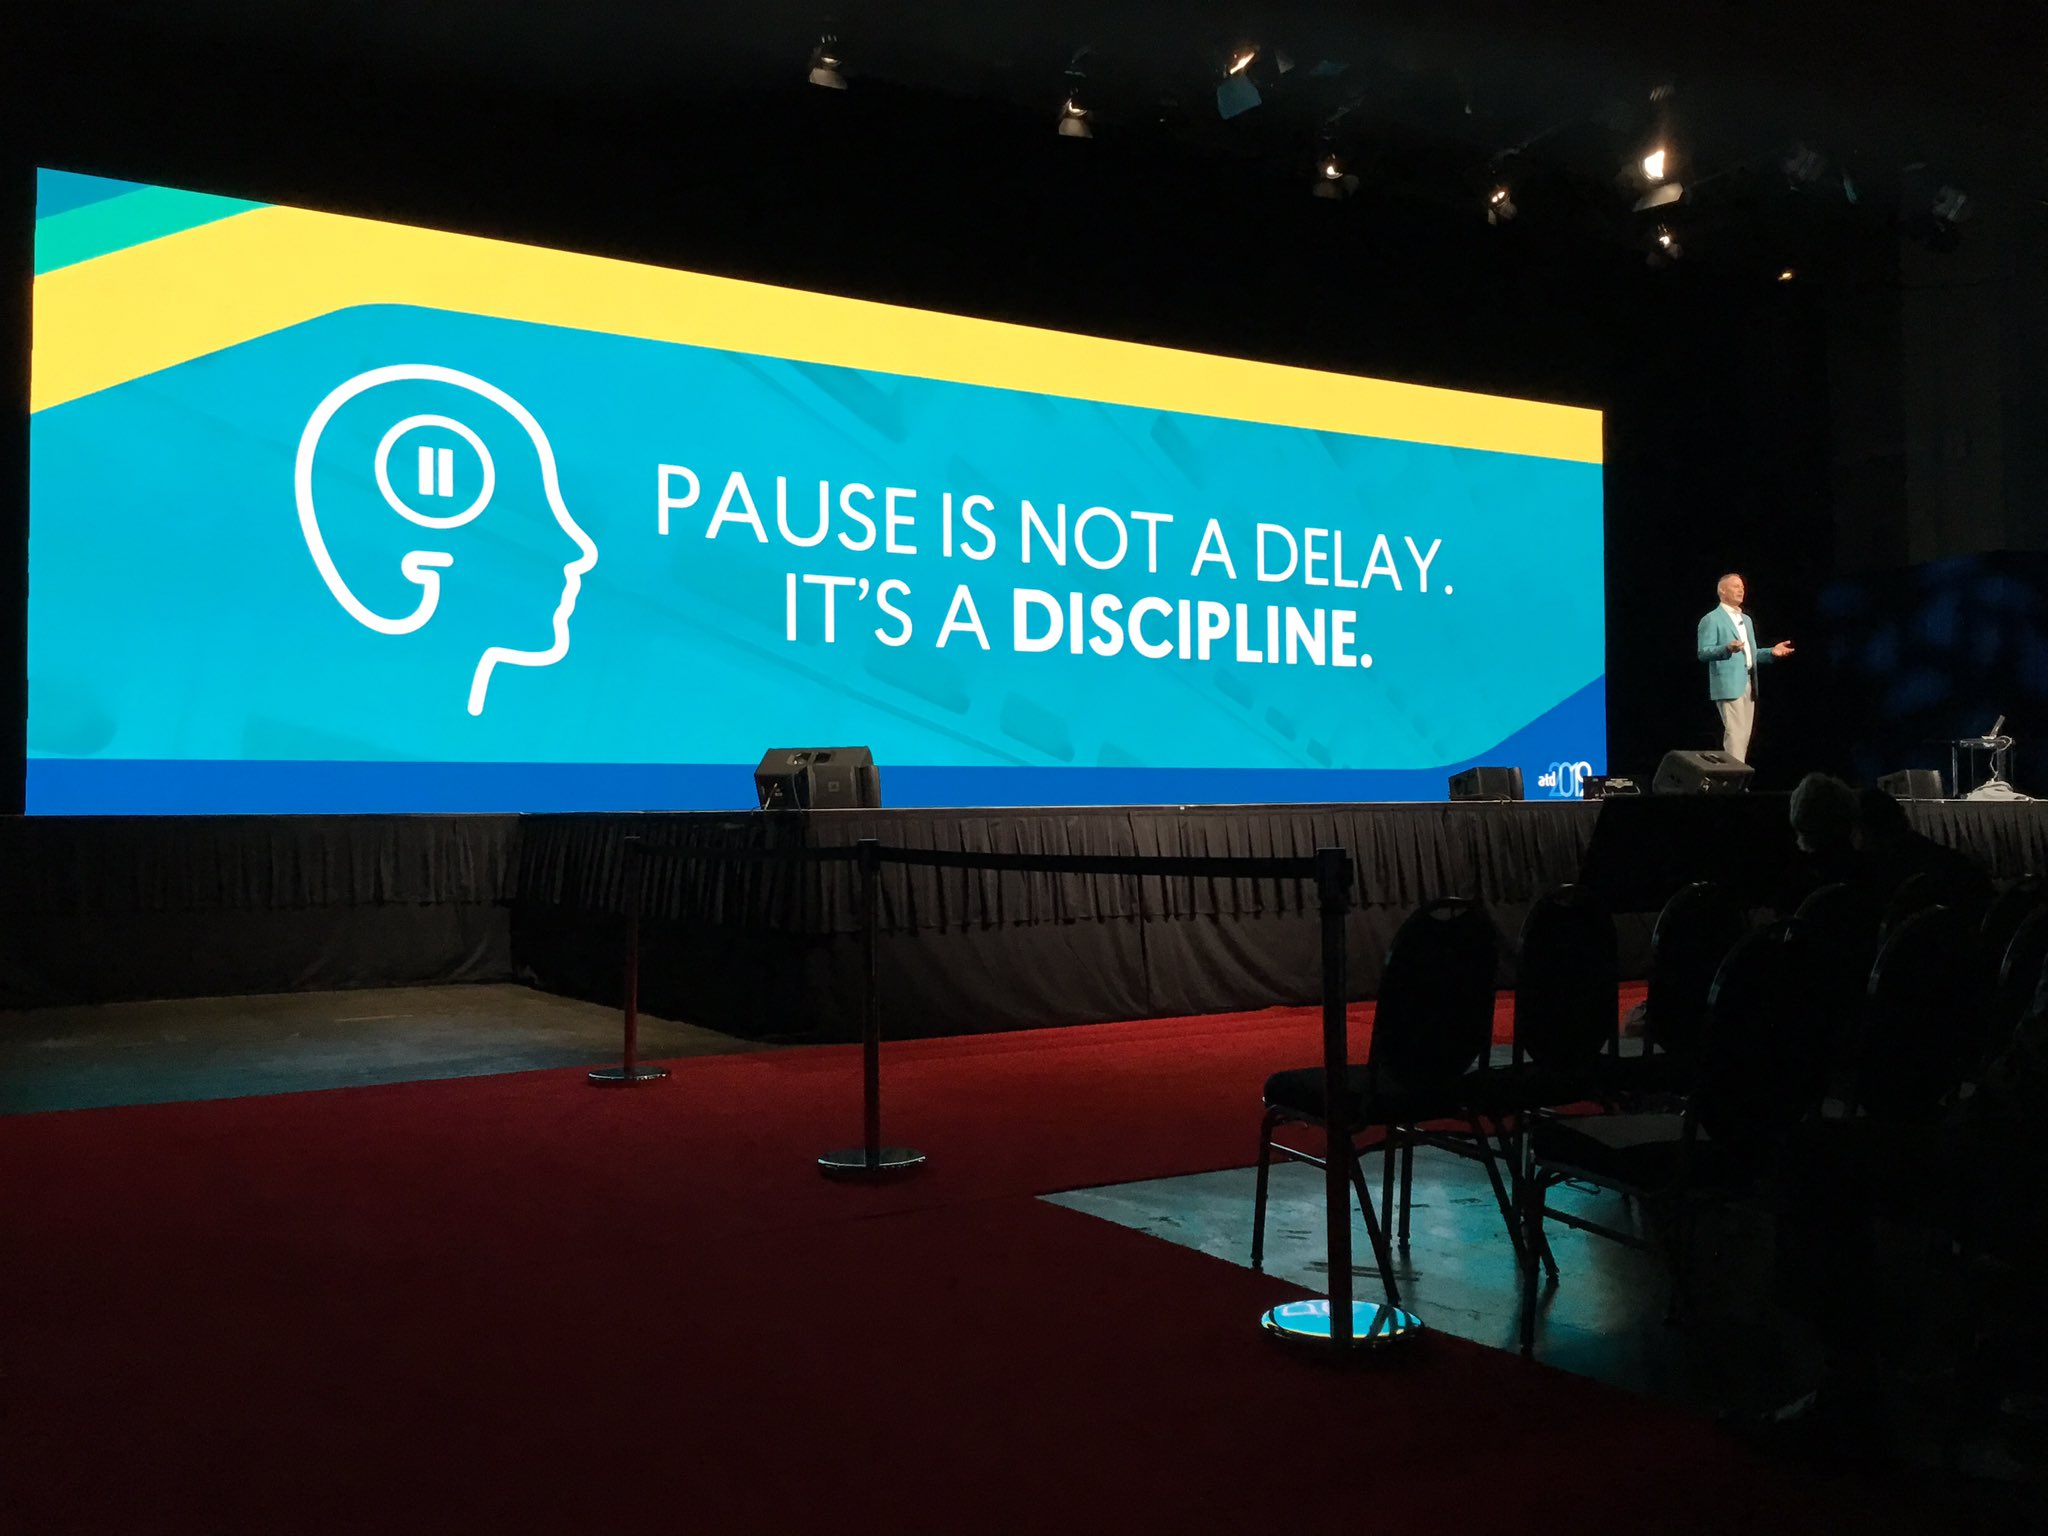 Pause is not s delay it's a discipline - @charlesfred #ATD2019 https://t.co/Oy8vxD4vIx